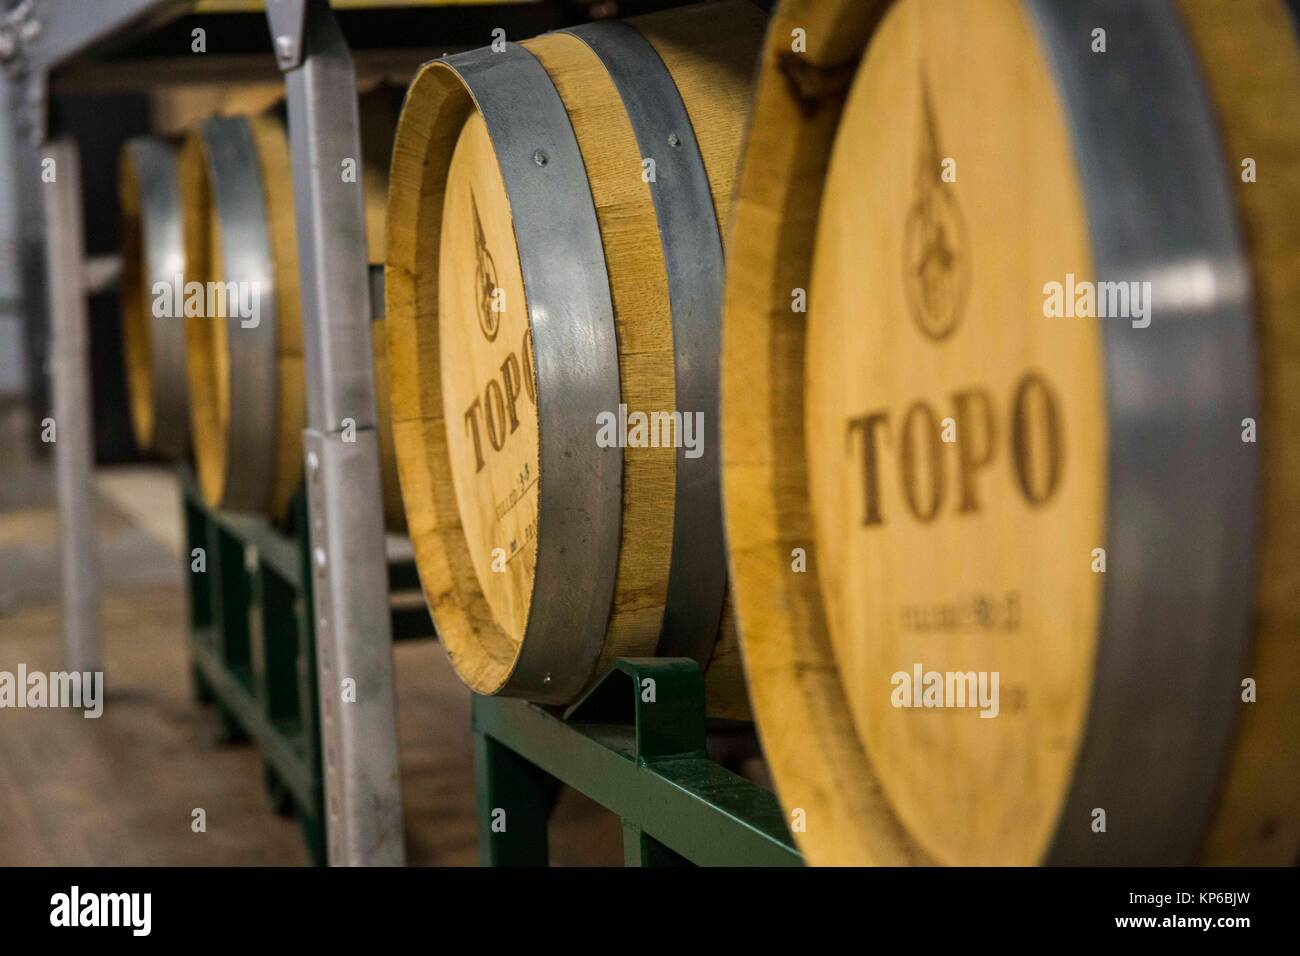 Whisky barrels stored in a distillery warehouse. They are lined up and full of alcohol. - Stock Image